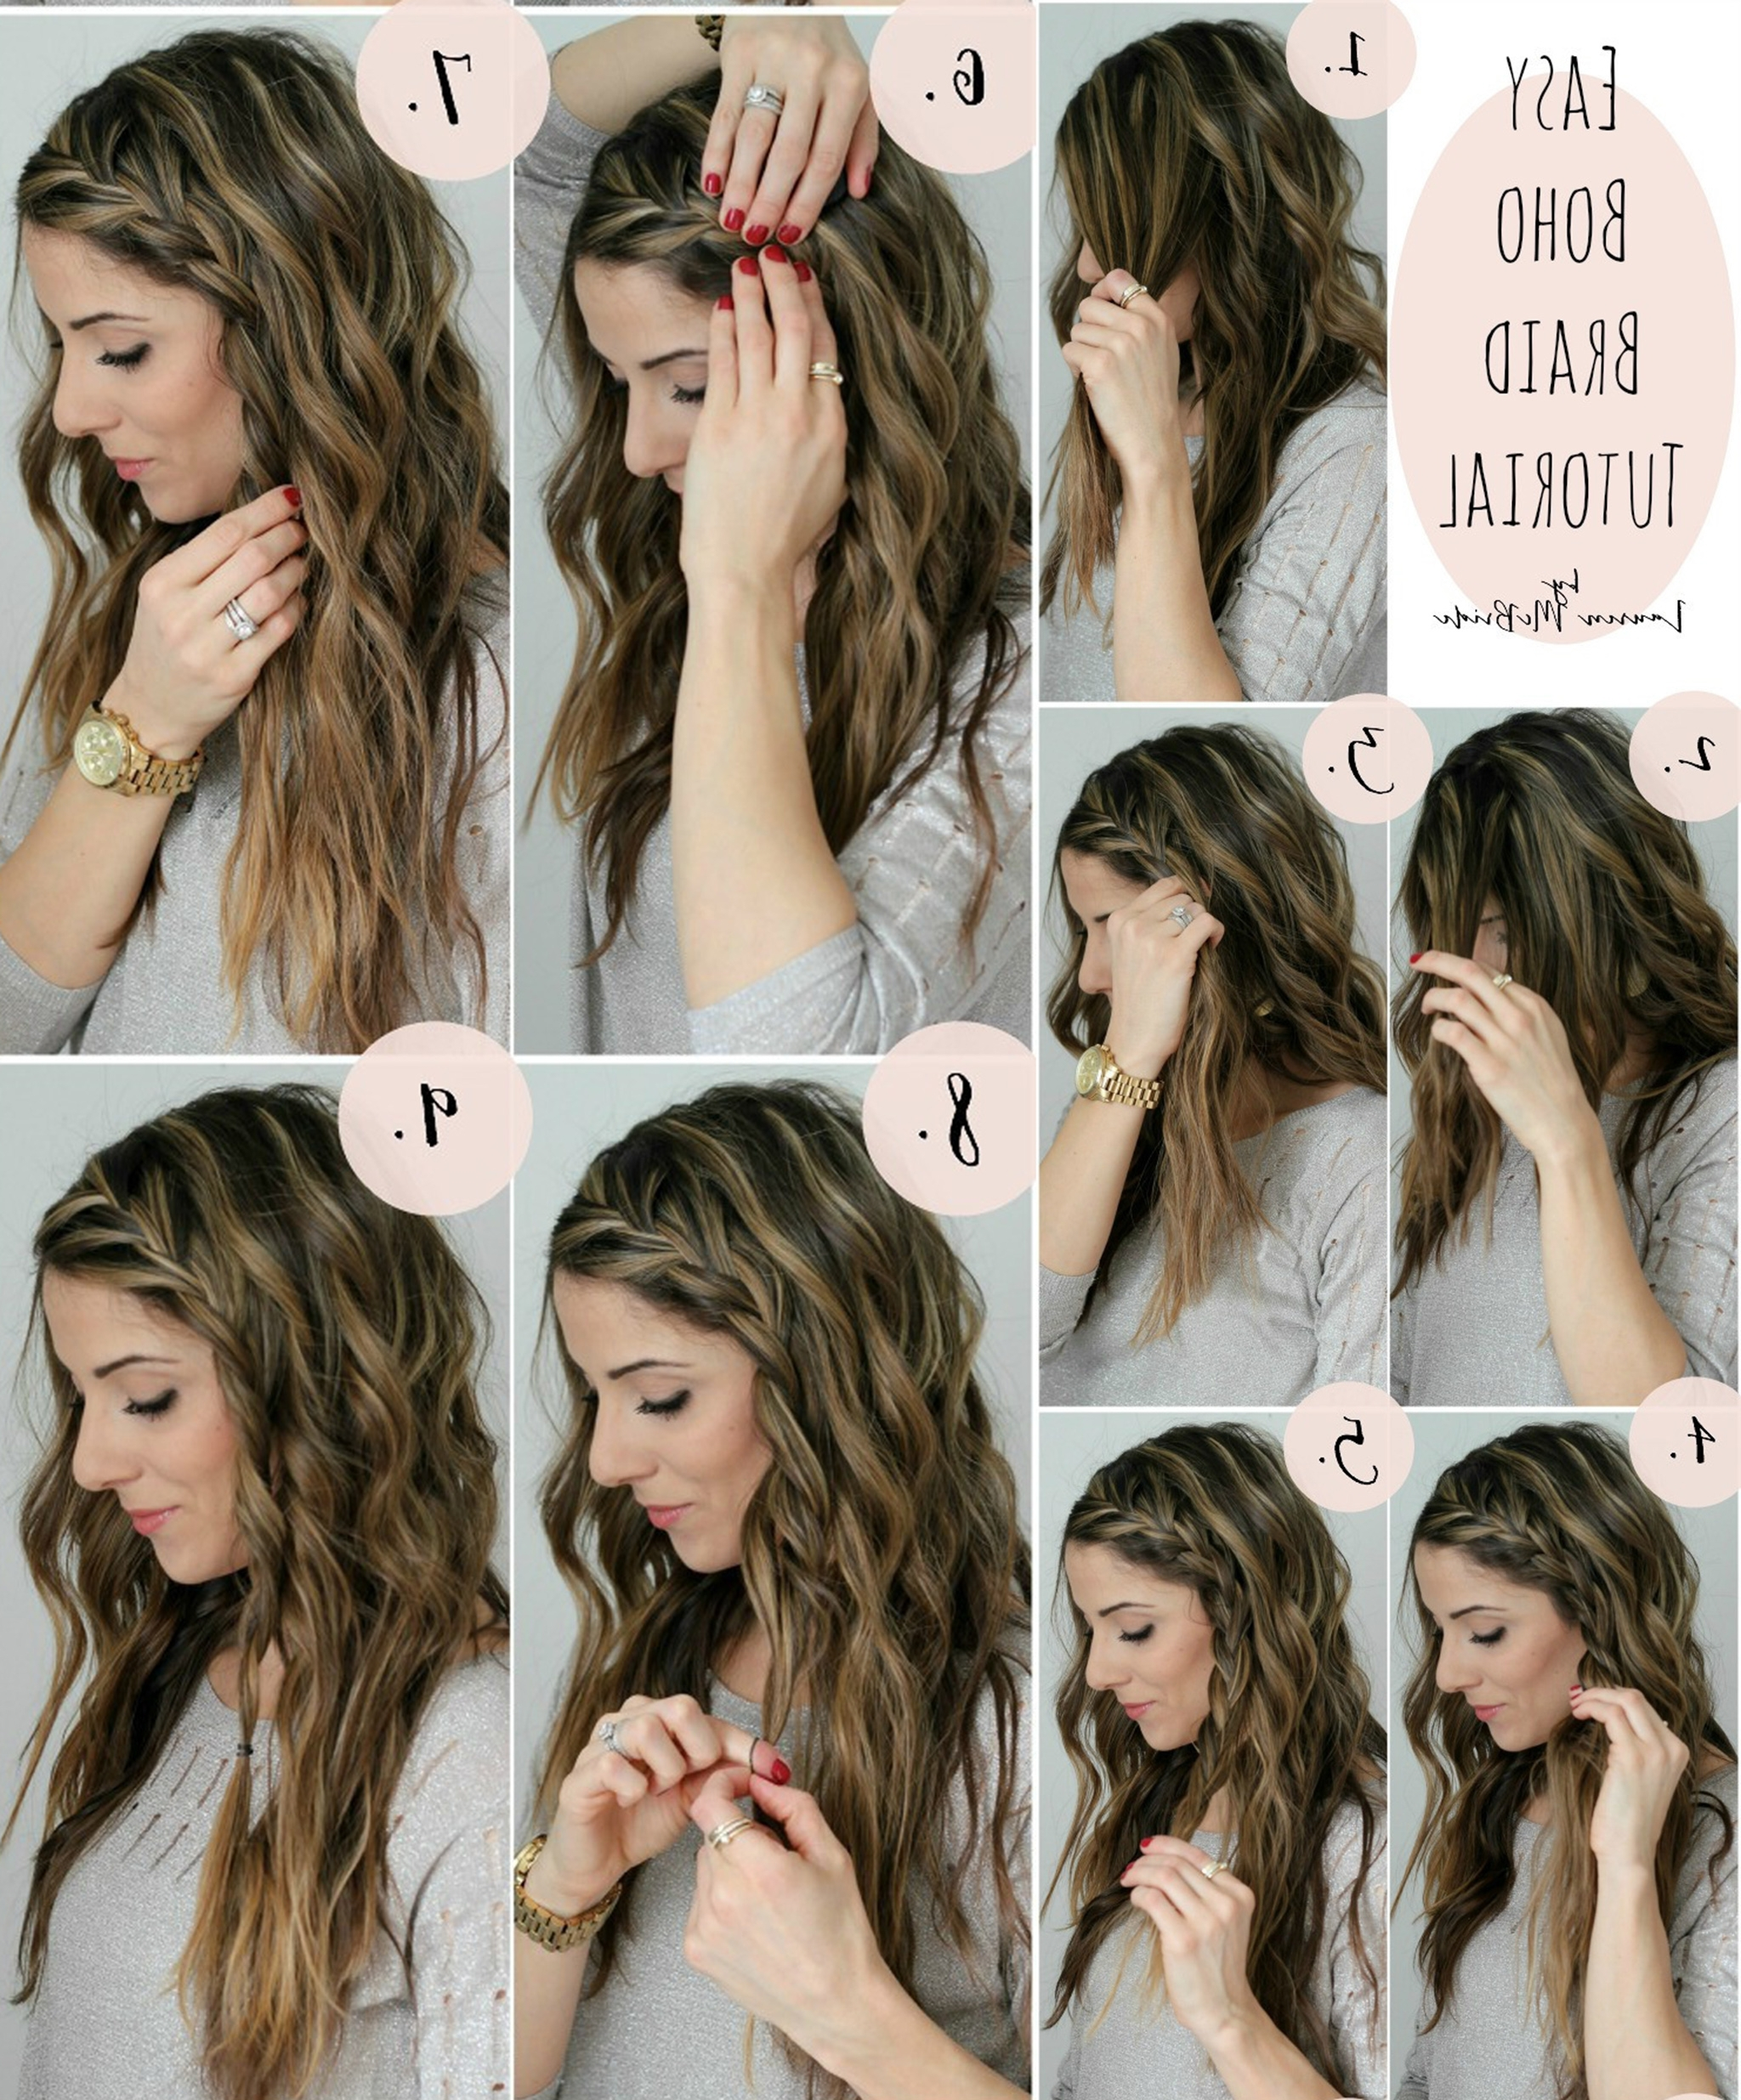 Learn, How To Create 15 Beautiful Braided Hairstyles, Sew Tutorial Pertaining To Most Recently Released Boho Braided Hairstyles (View 11 of 15)